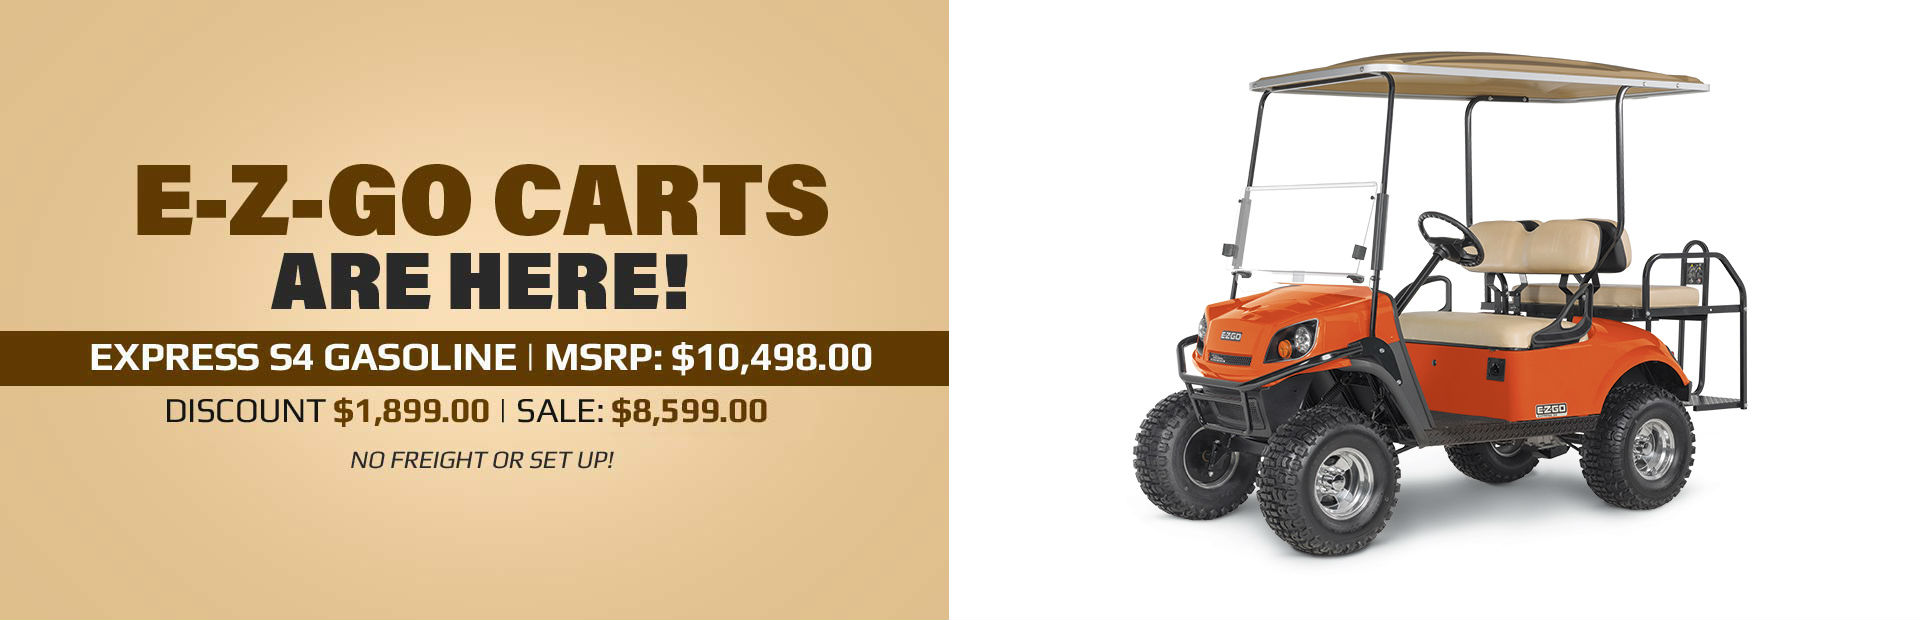 E-Z-GO carts are here! The Express S4 - Gas is on sale for $8,599.00! Click here to view the model.